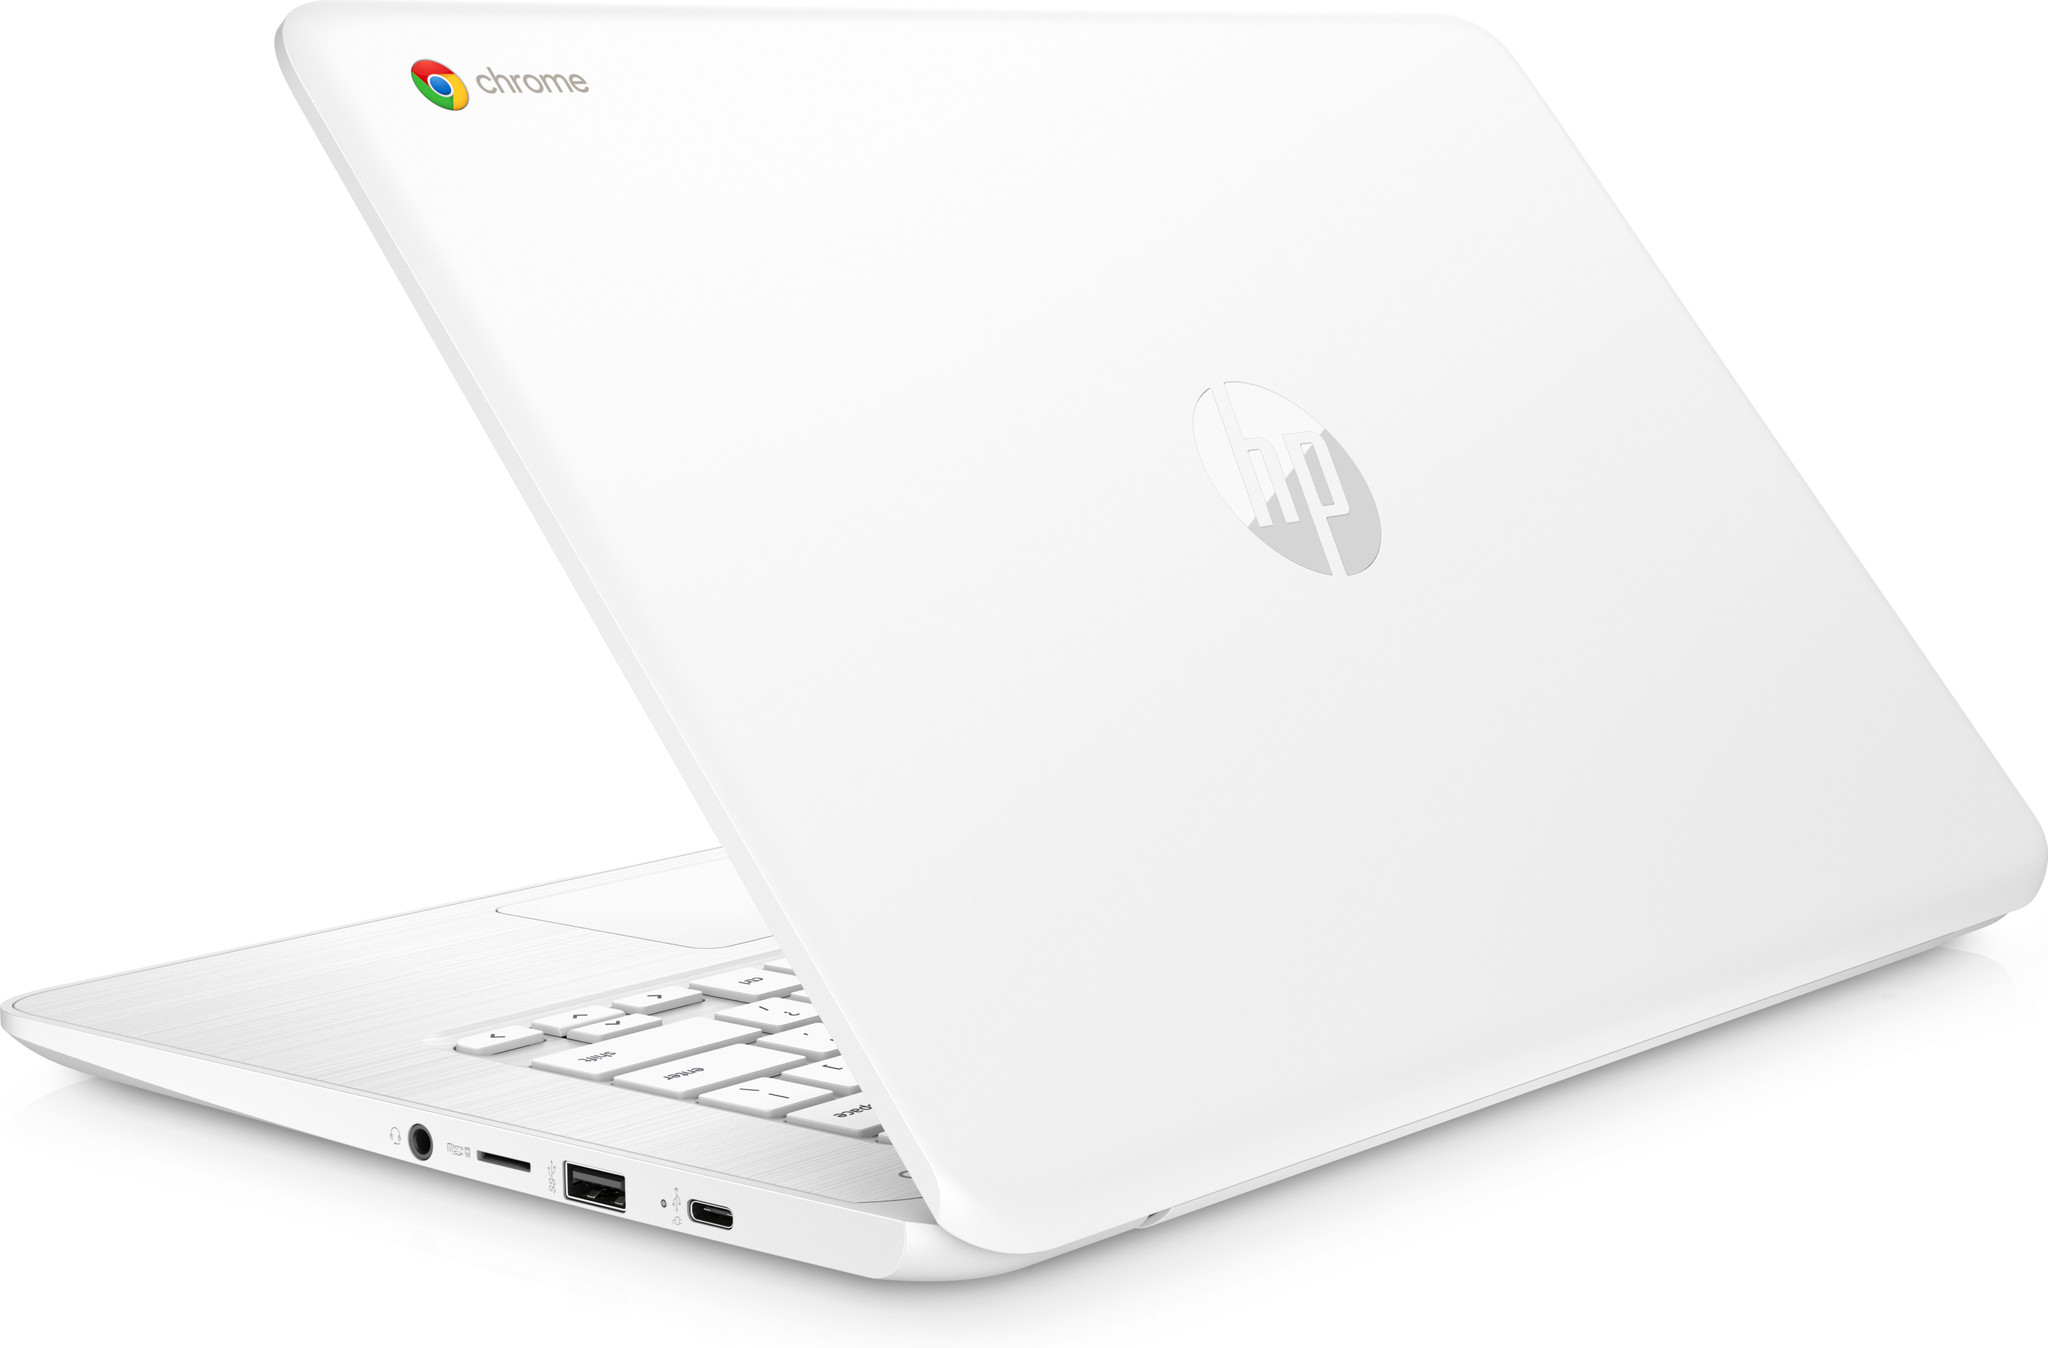 HP Chromebook 14-ca050nd